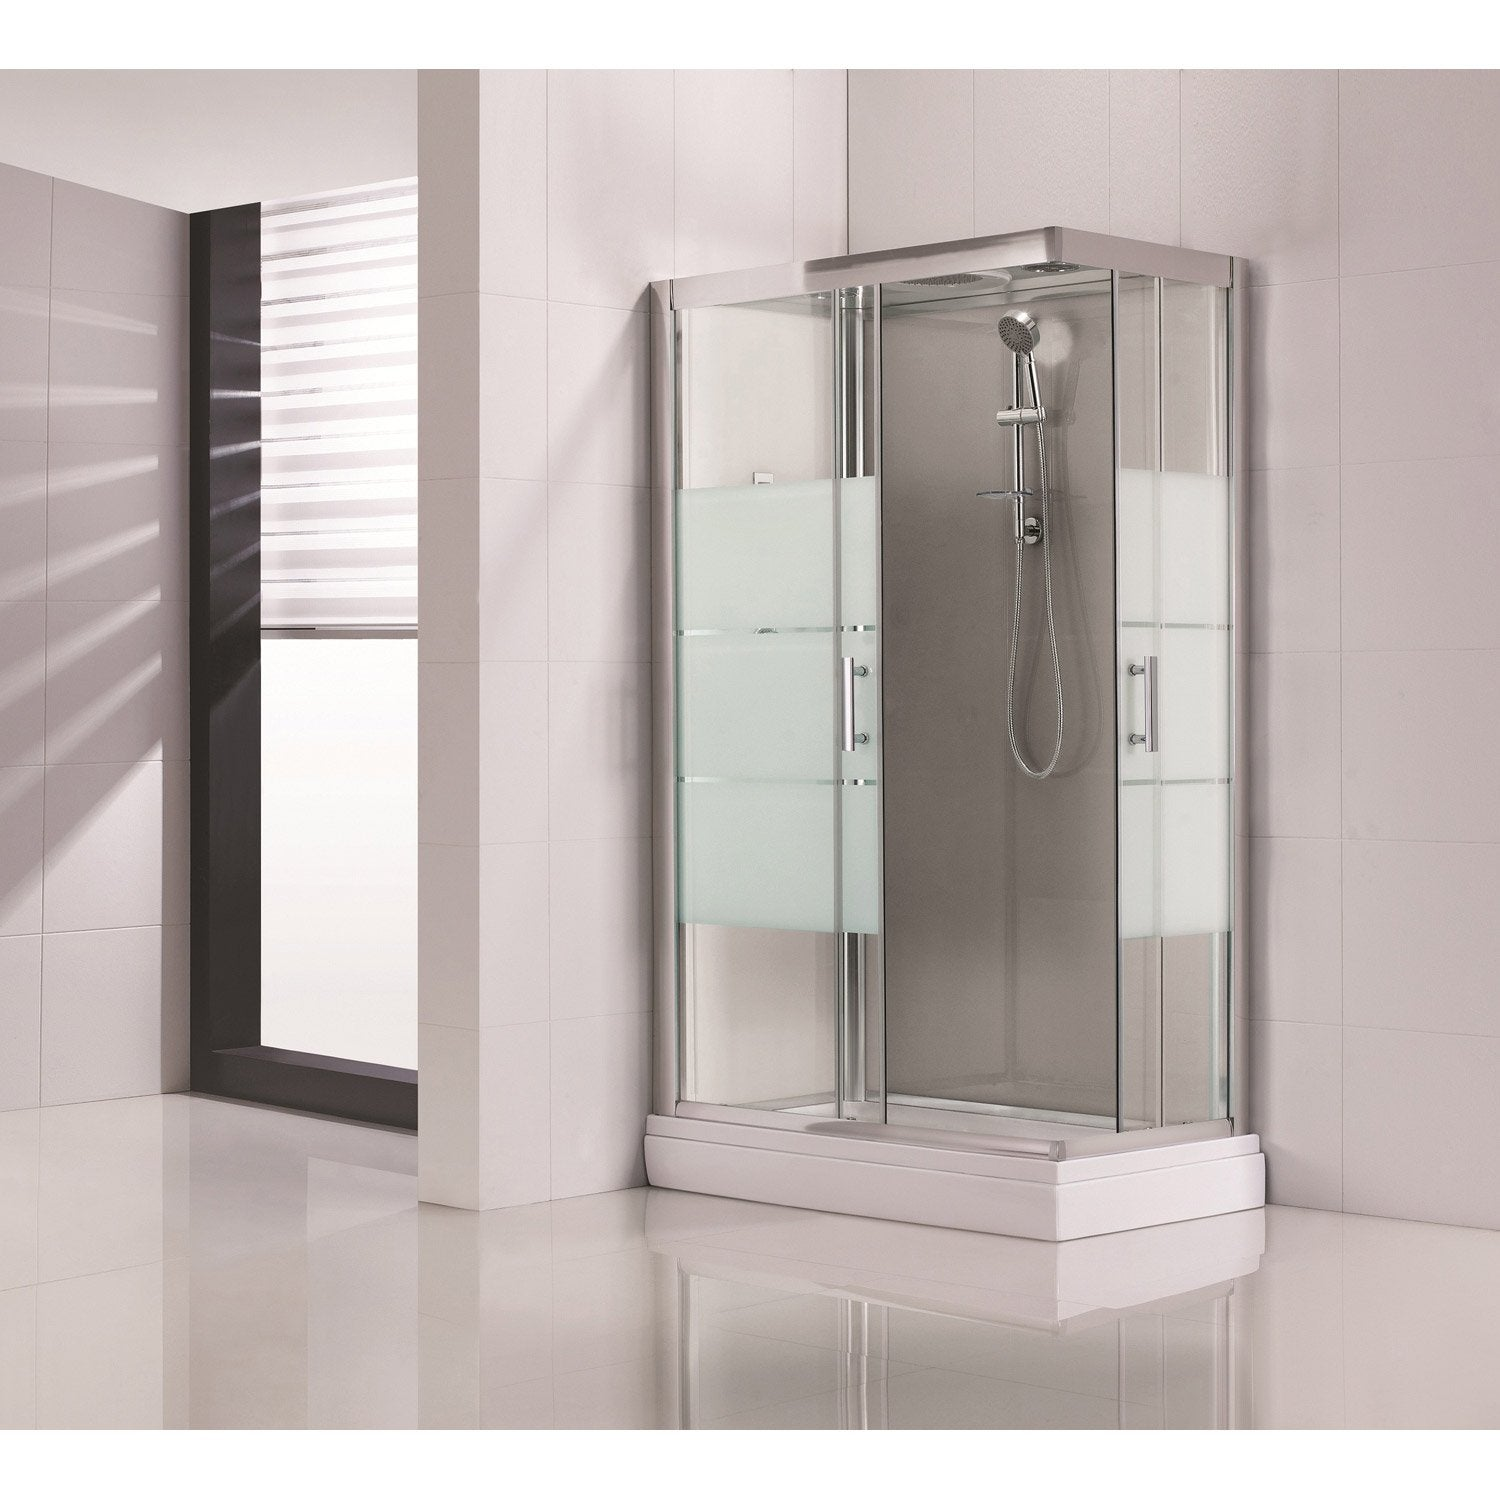 Cabine de douche rectangulaire 120x80 cm optima2 grise leroy merlin - Cabine douche rectangulaire ...